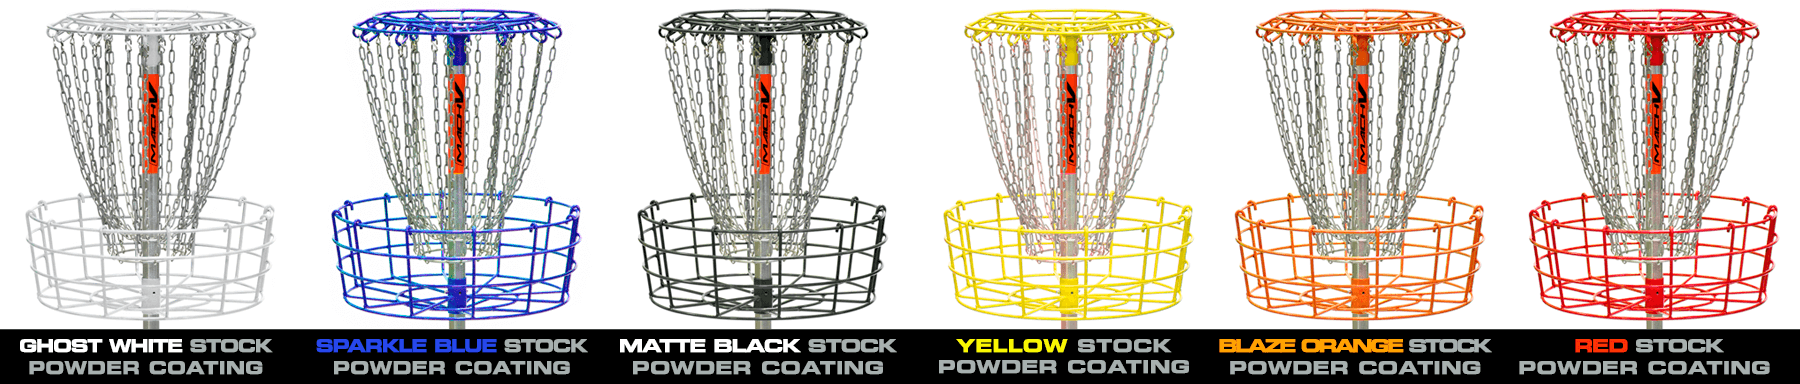 Stock color and custom powder coated finishes all applied over 100% hot-dipped galvanized DGA Mach baskets